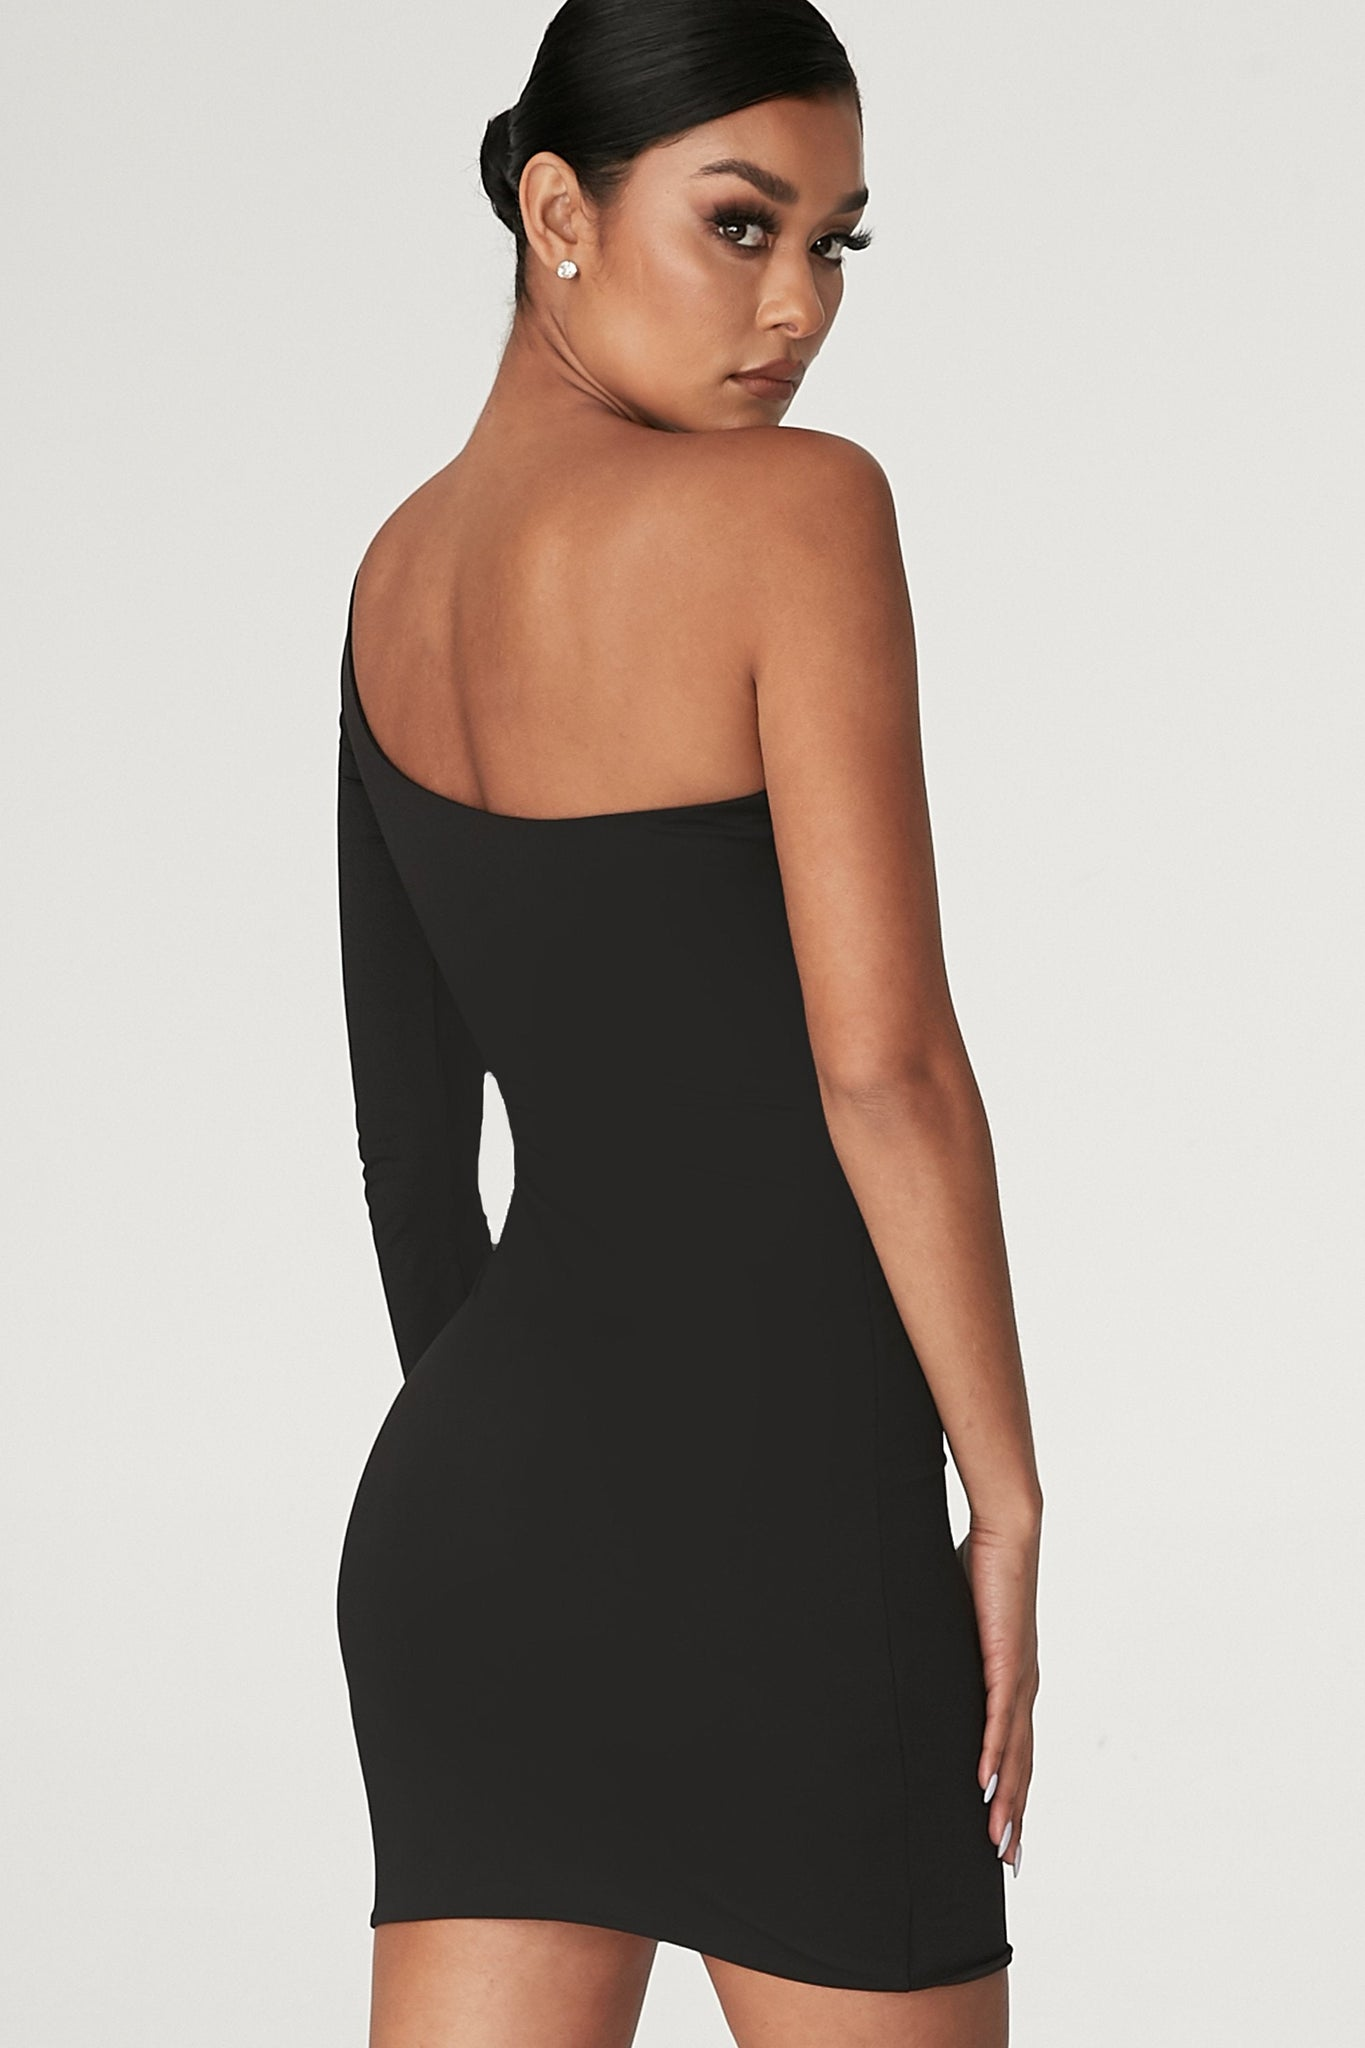 Mya One Shoulder Dress - Black - MESHKI